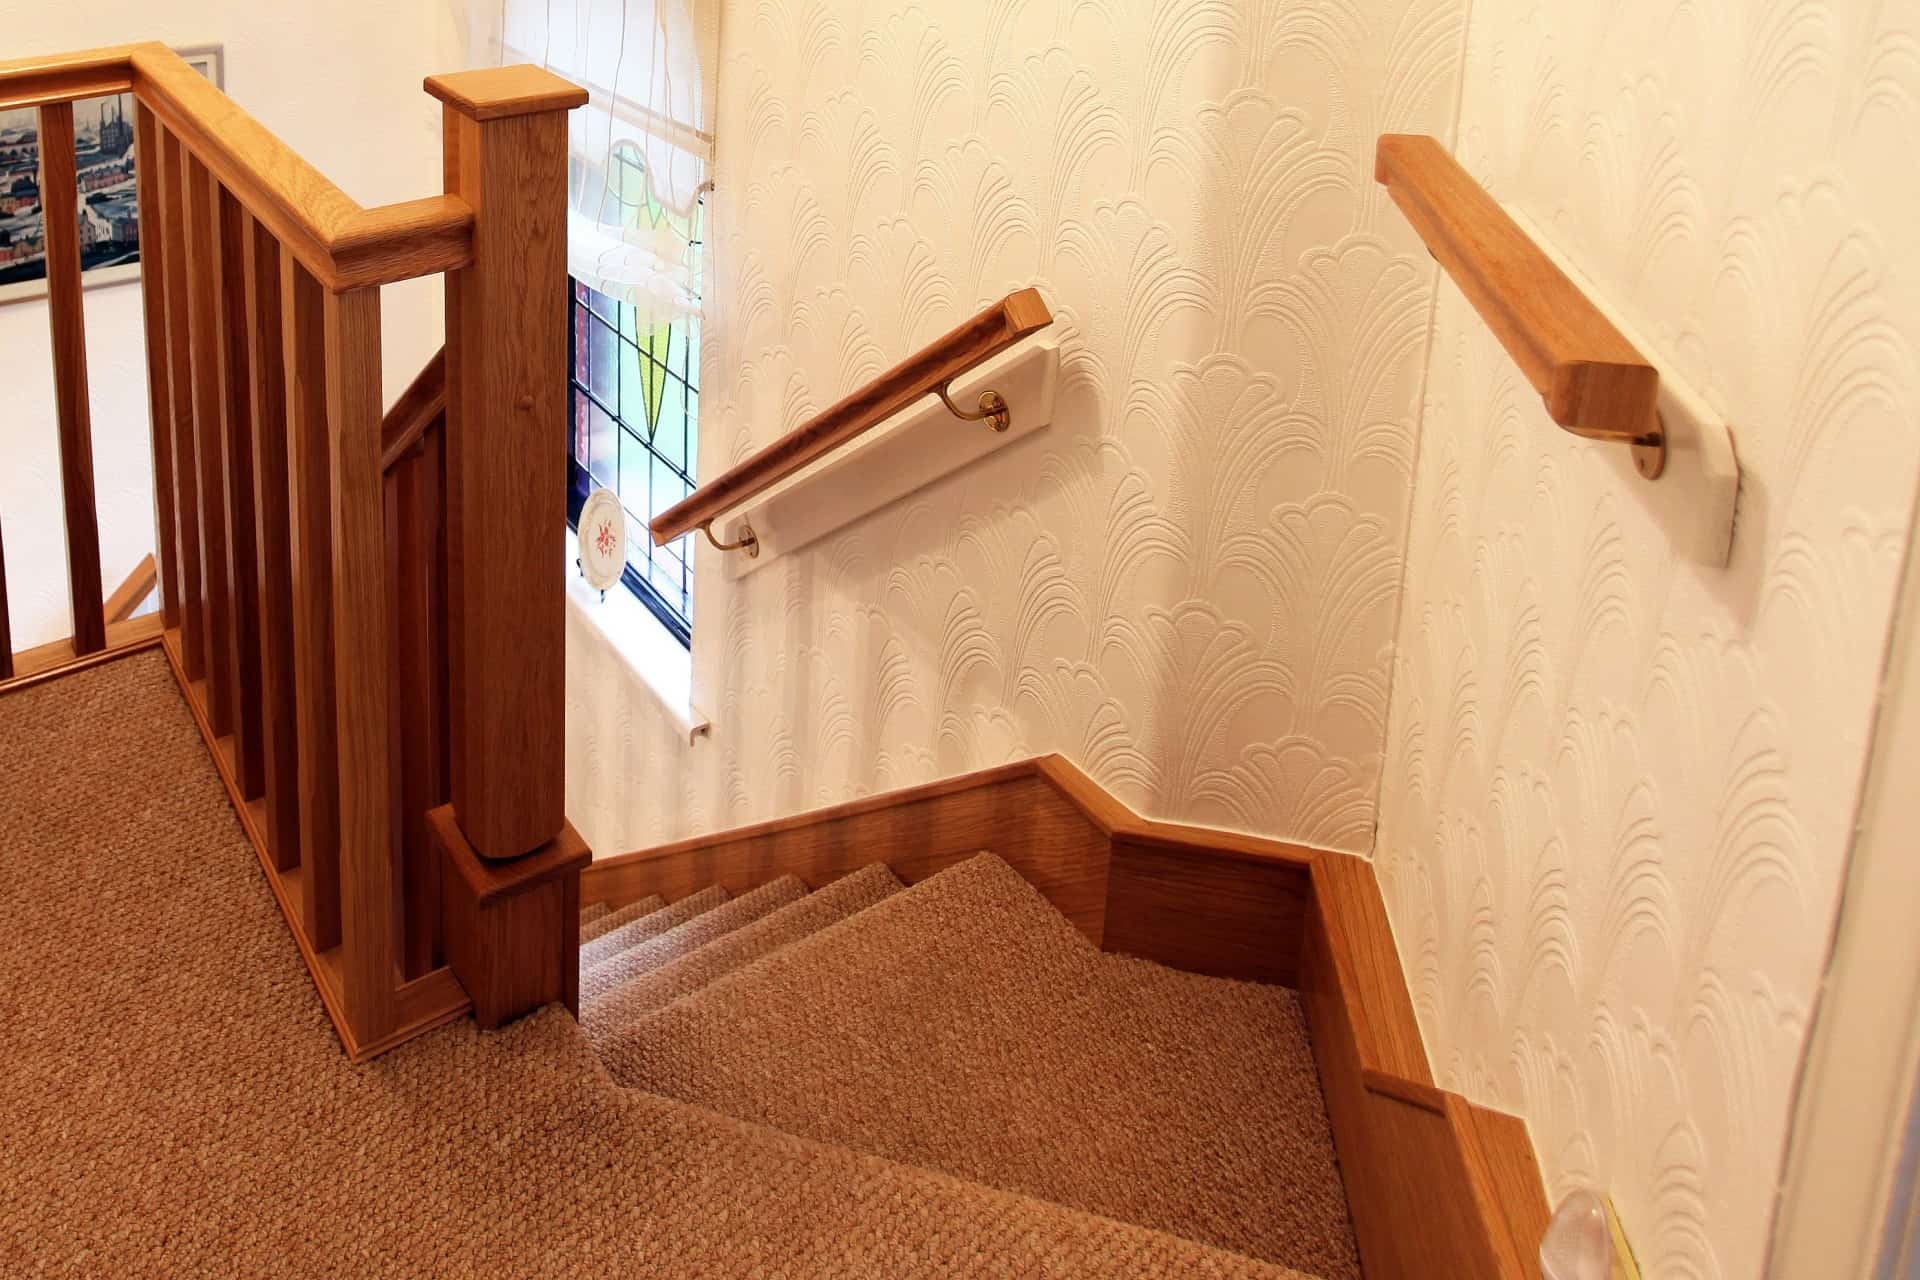 Wall mounted handrails offer extra stability on your stairs we can make a handrail in any design and finish to match your stairs and decor